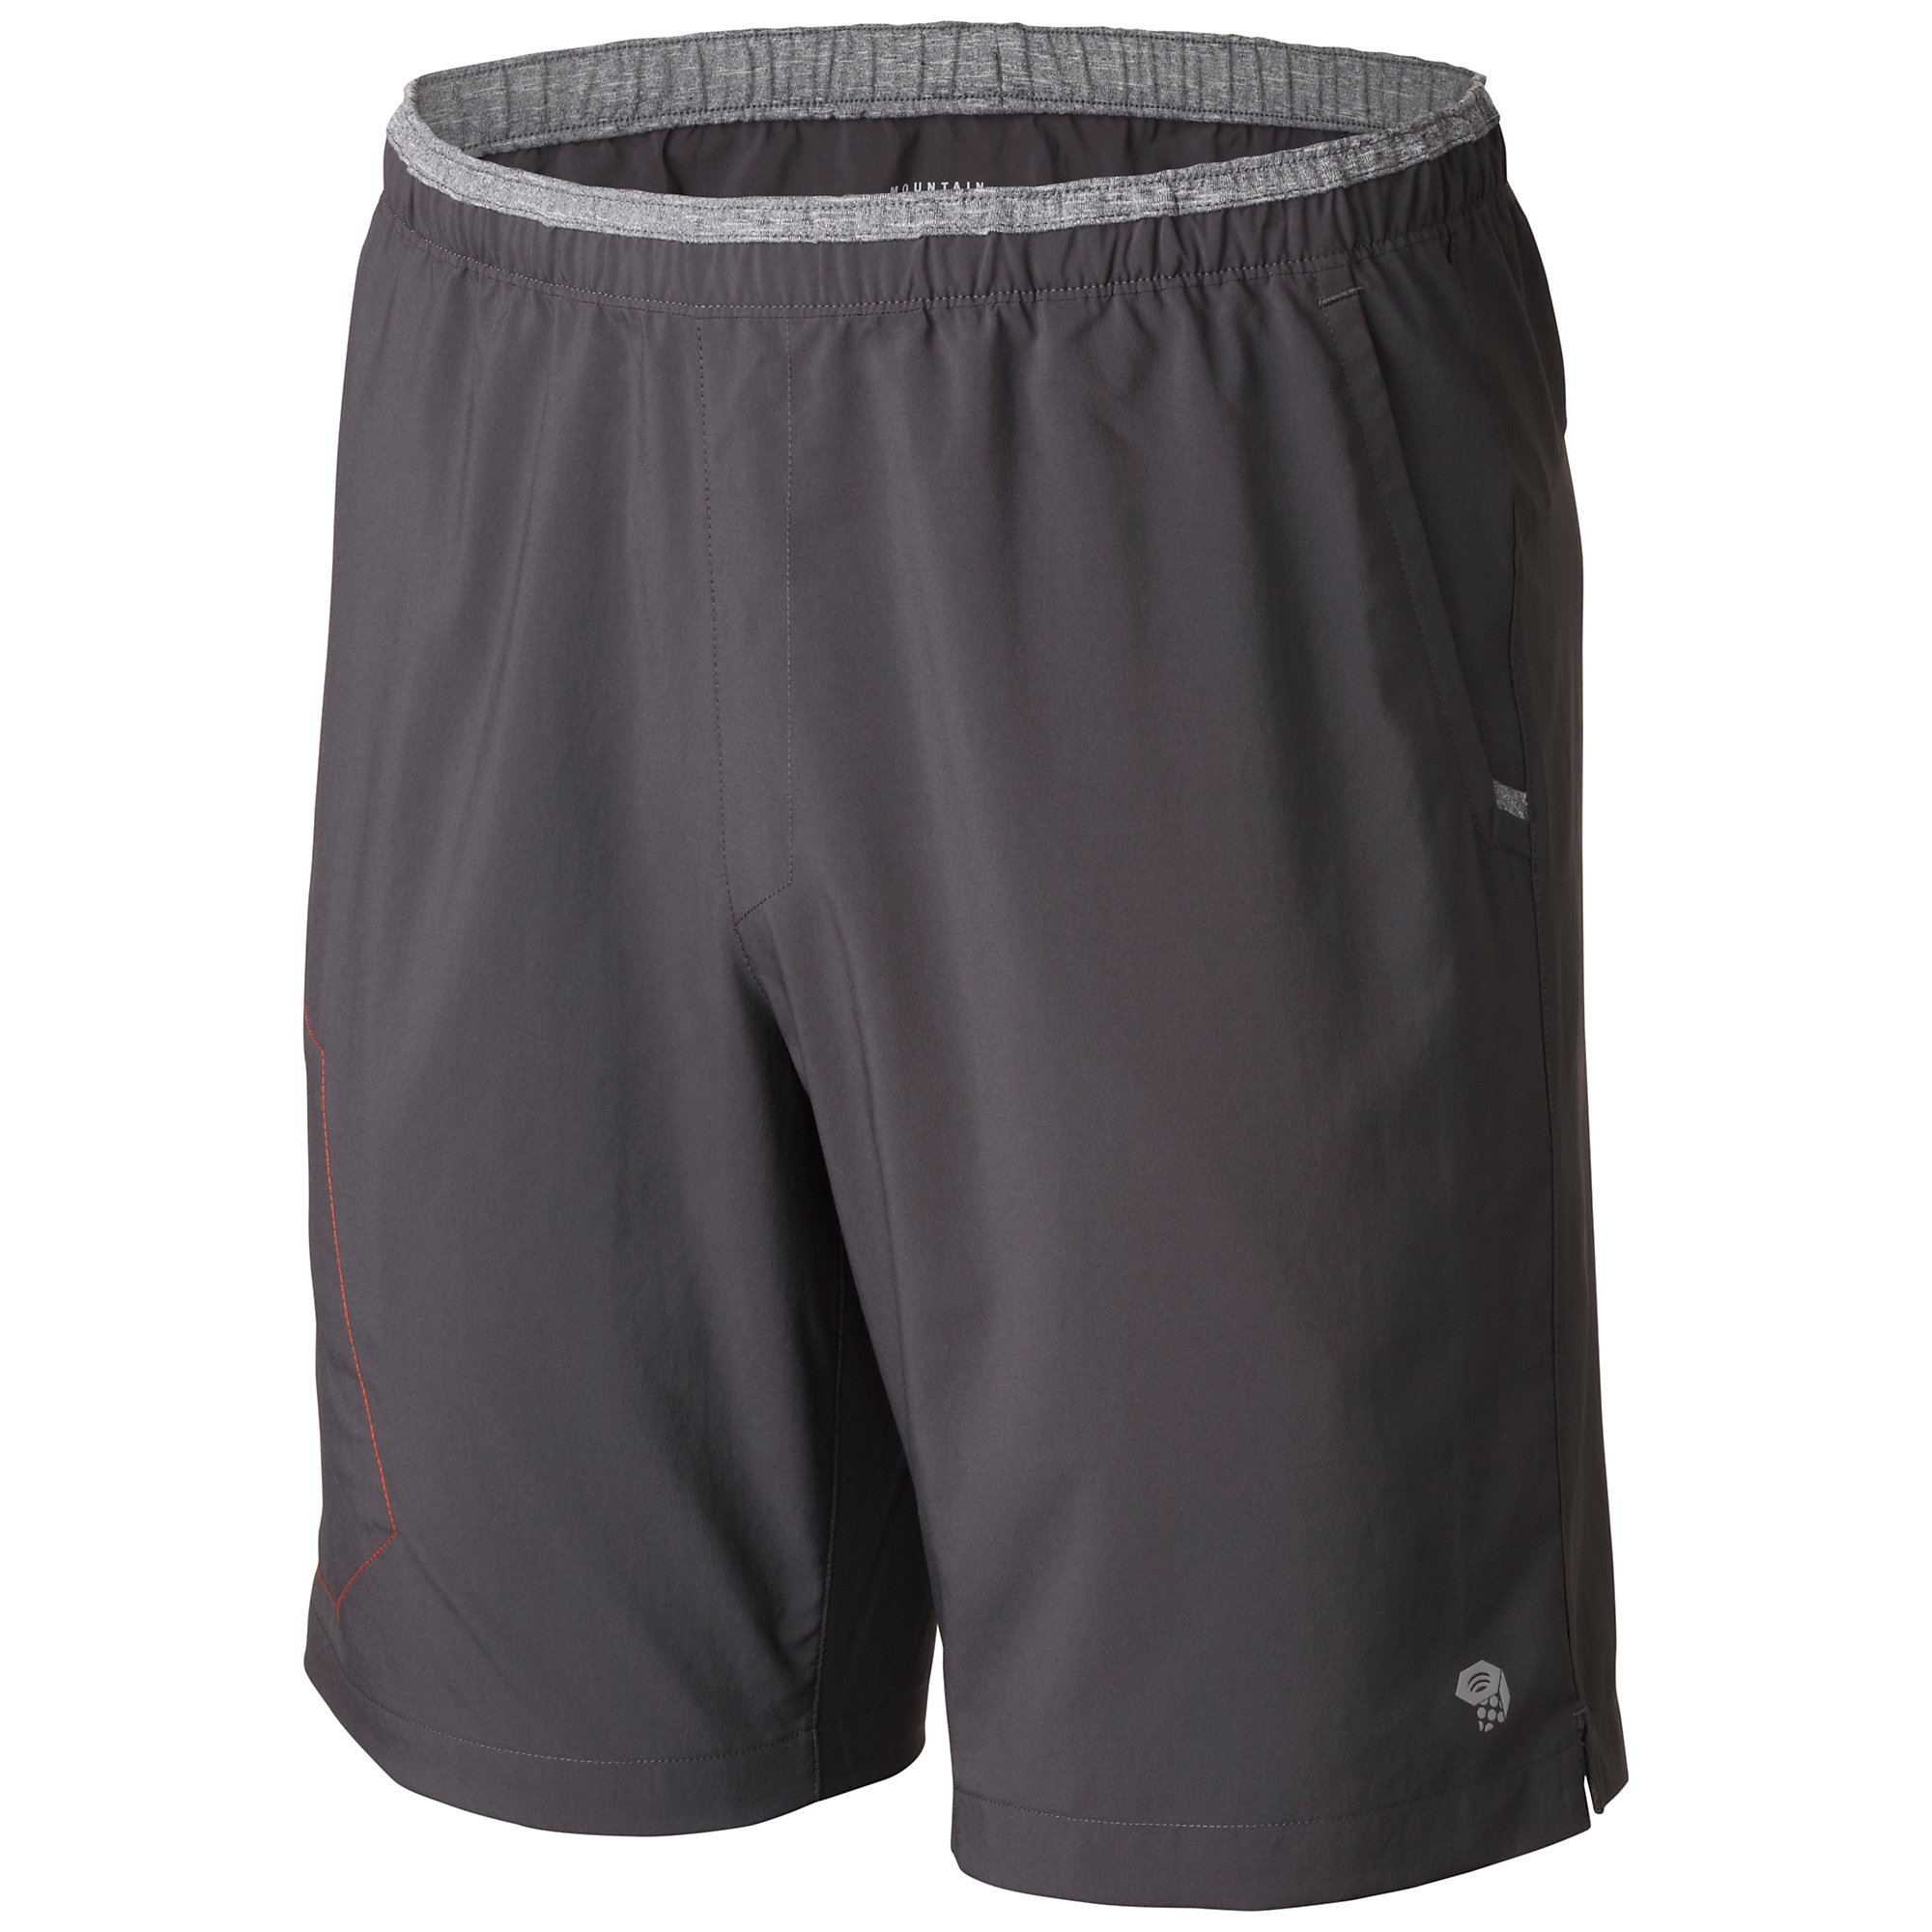 Mountain Hardwear Refueler X Short